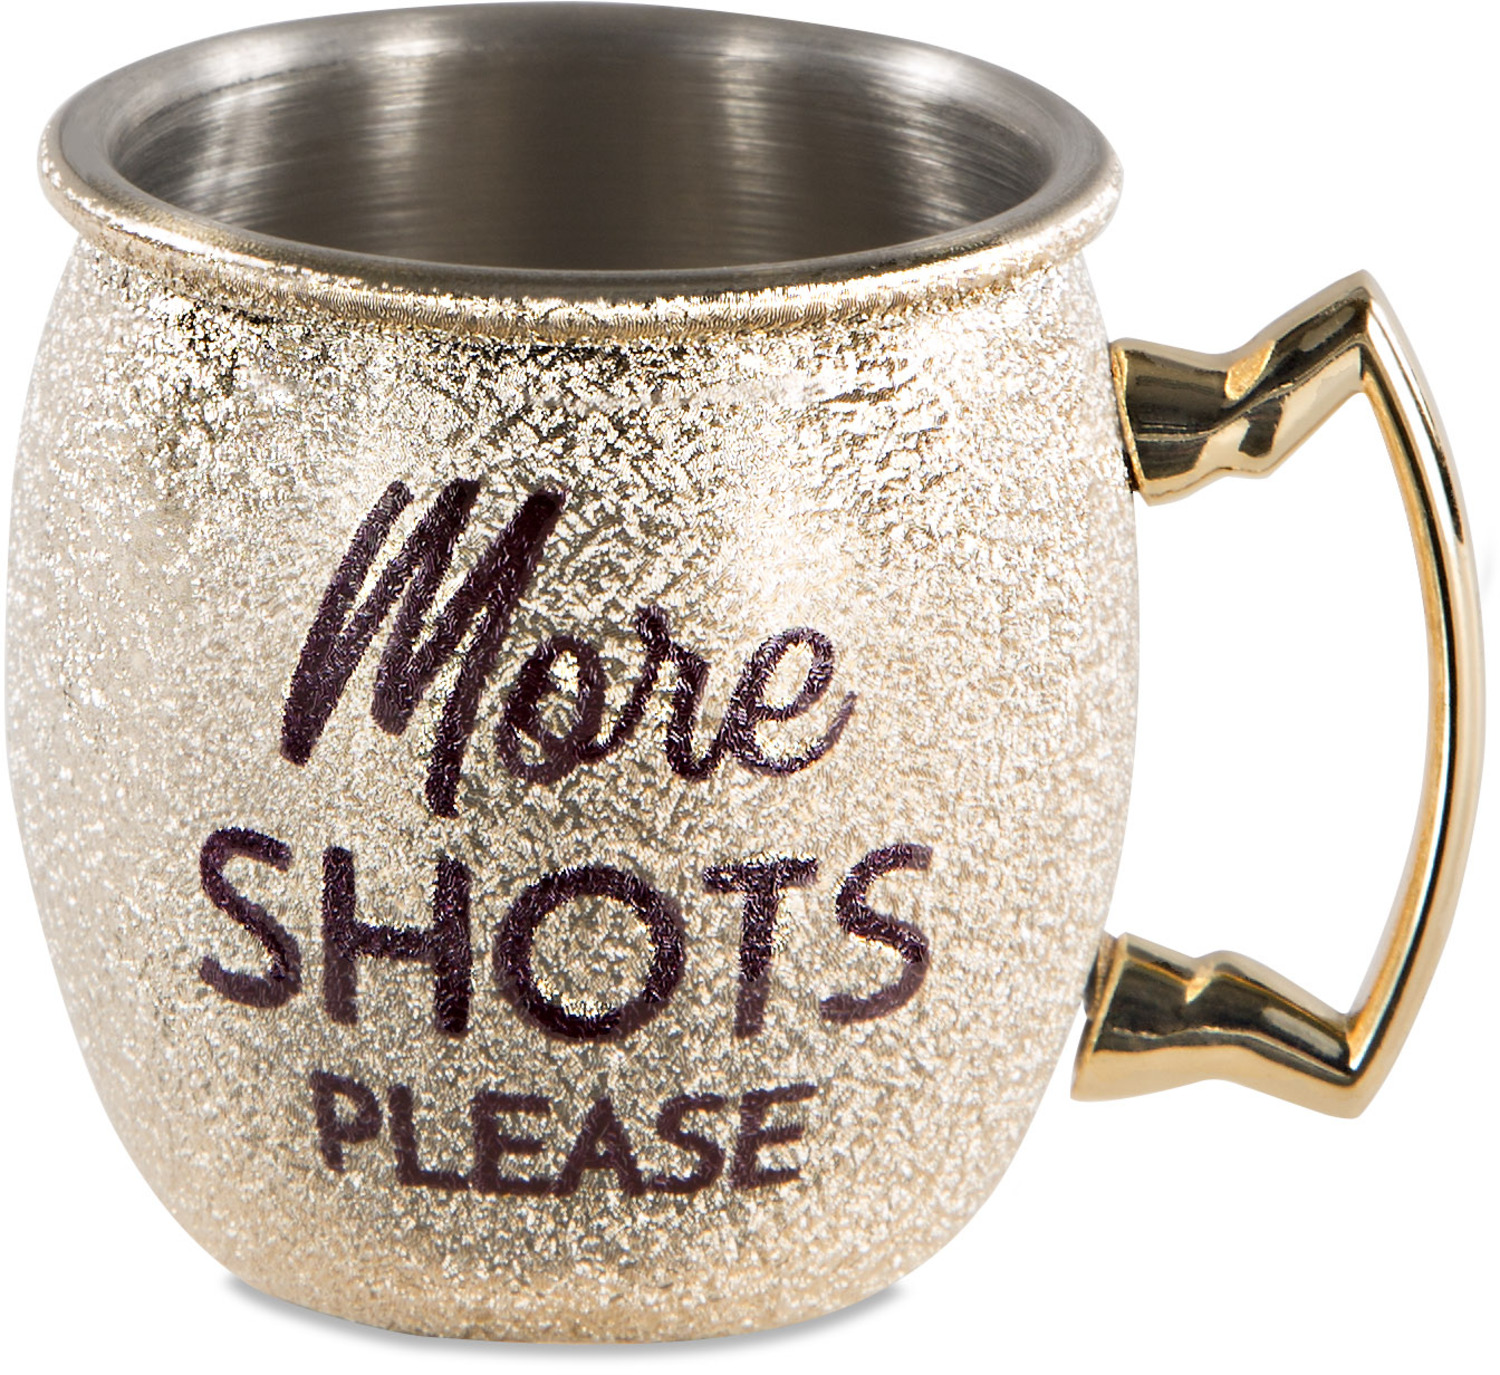 More Shots by My Kinda Girl - More Shots - 2 oz Stainless Steel Moscow Mule Shot Glass